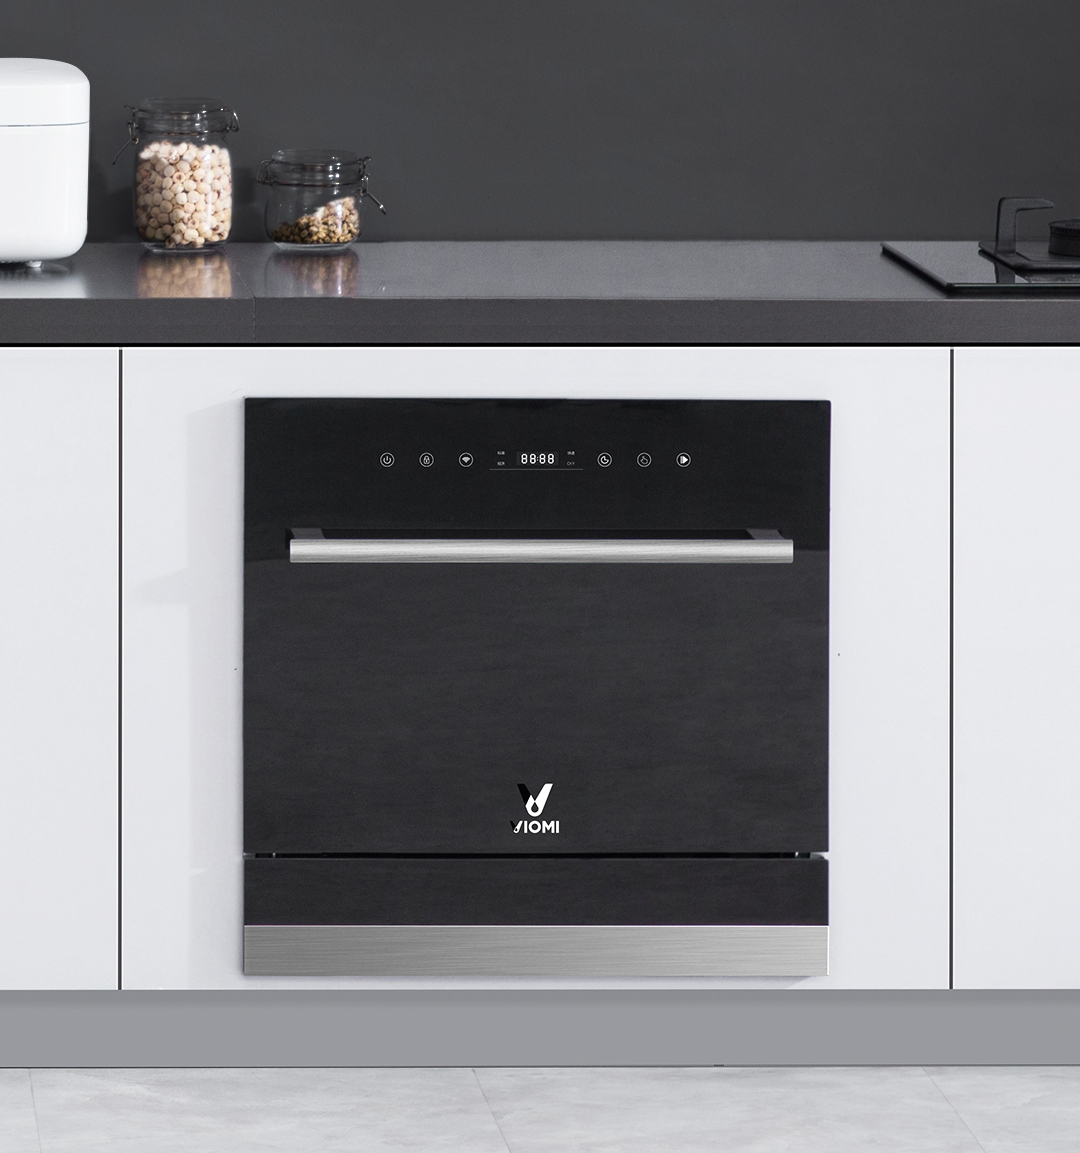 xiaomi-washing-machine-Viomi